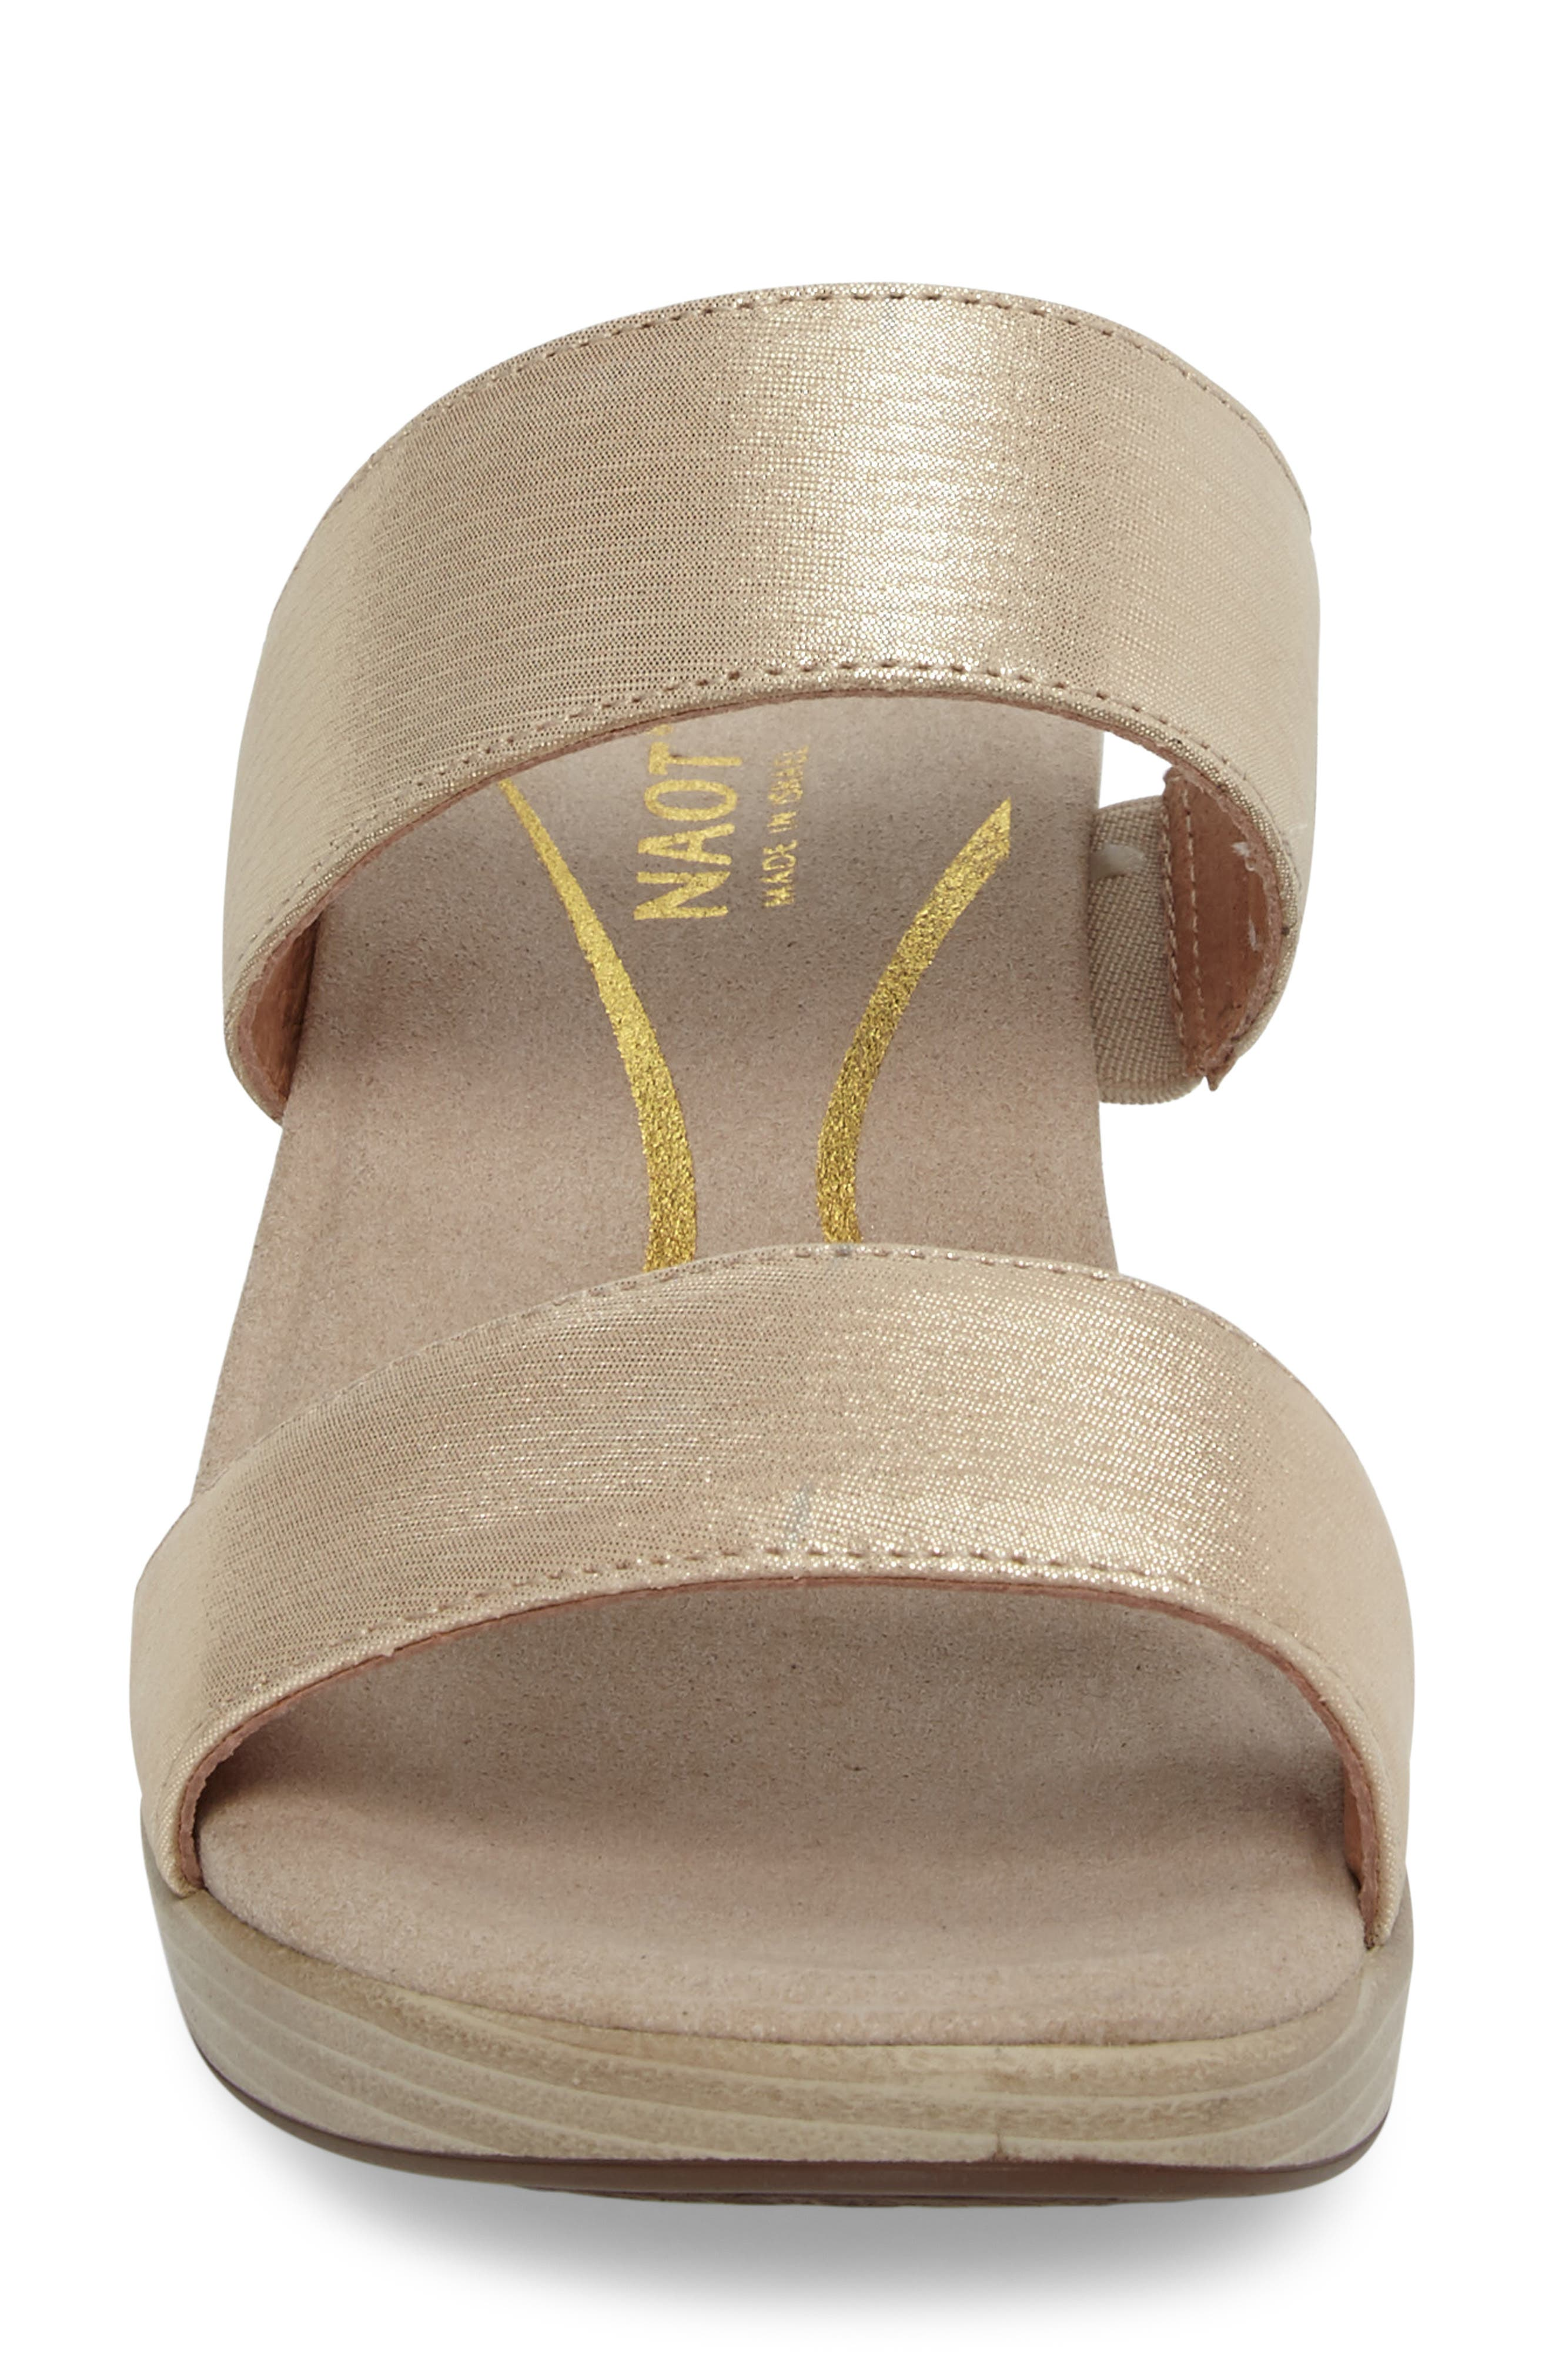 Fate Platform Sandal,                             Alternate thumbnail 4, color,                             GOLD THREADS LEATHER